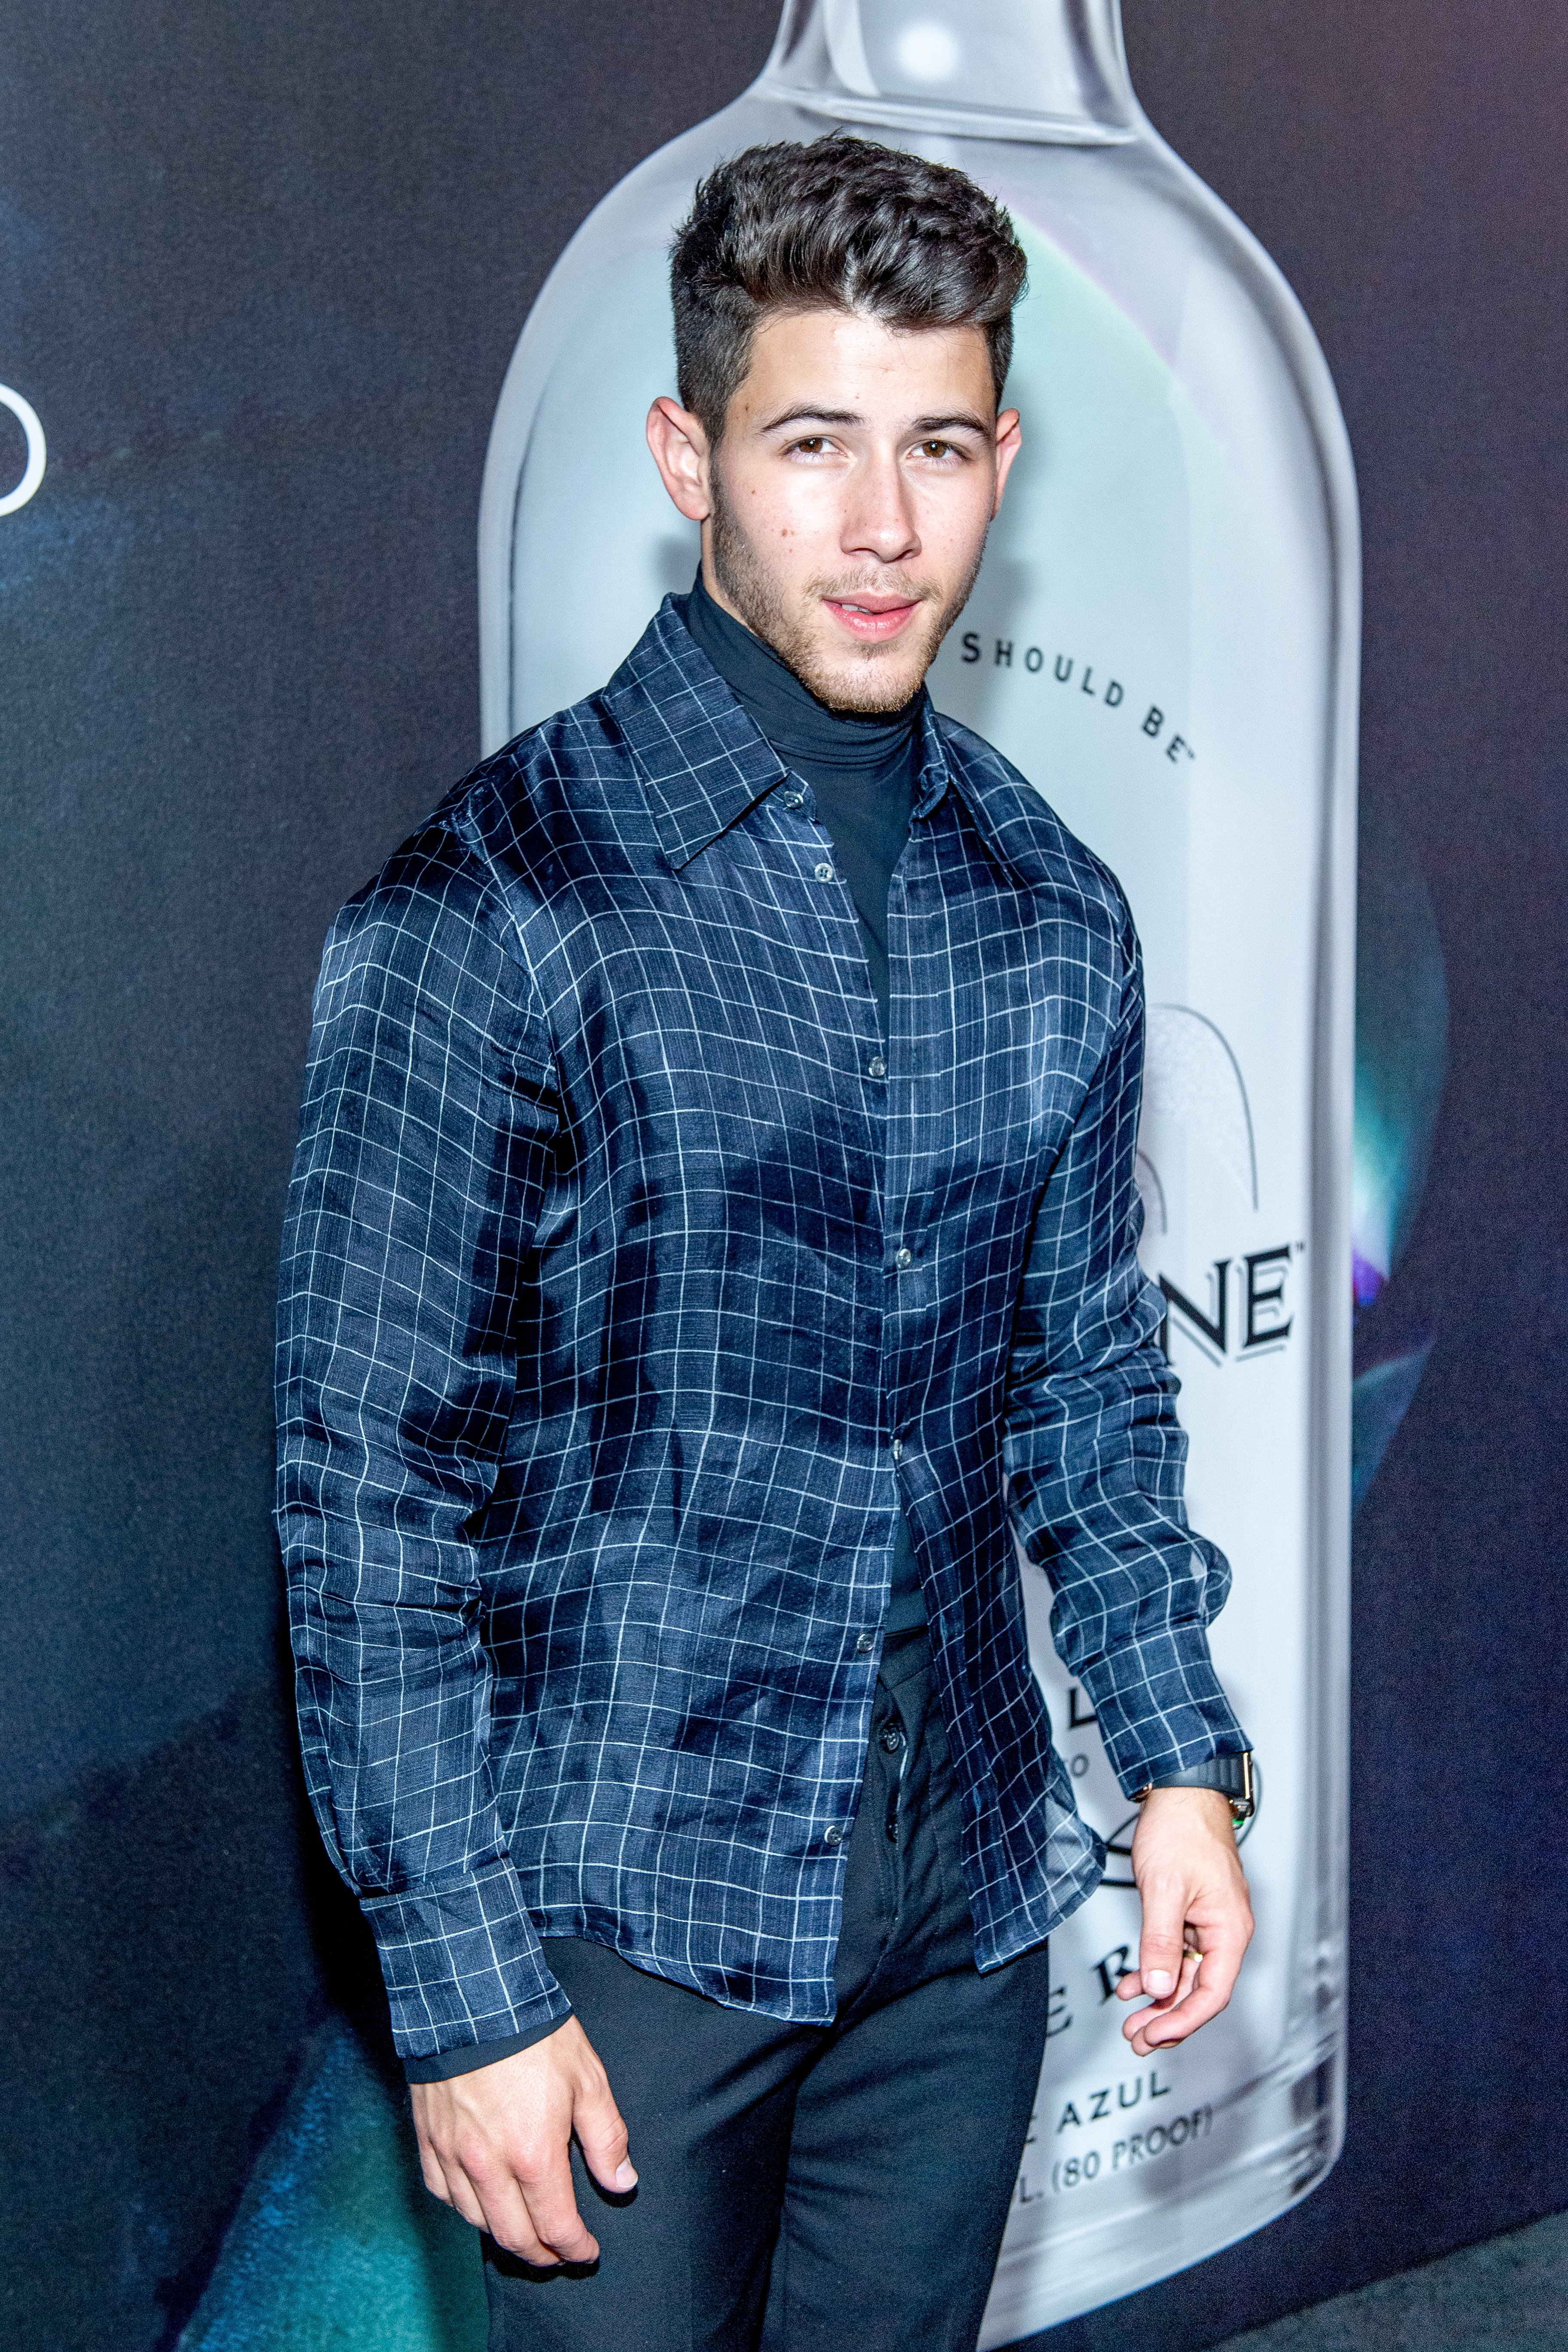 Nick Jonas attends Nick Jonas x John Varvatos Villa One Tequila Launch on August 29, 2019, in New York City.   Source: Getty Images.